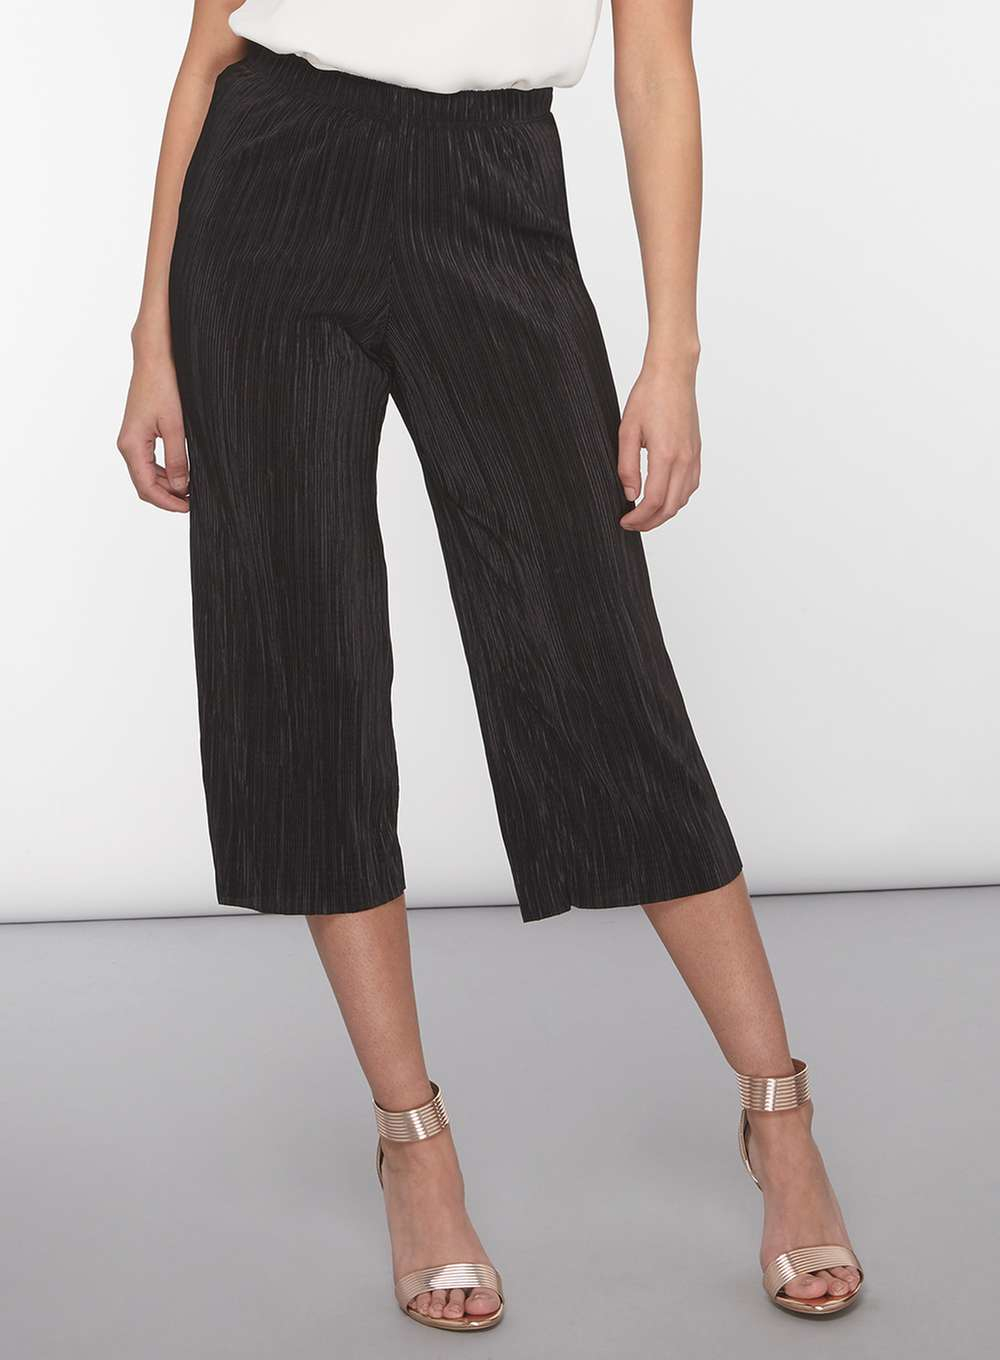 ASOS DESIGN Petite cropped drawstring trousers. £ ASOS DESIGN cigarette trousers in black with side stripe. £ ASOS DESIGN elasticated clean tapered trouser. £ New Look tie waist crop trousers in leopard print. £ Custommade Cropped Tailored Trousers. £